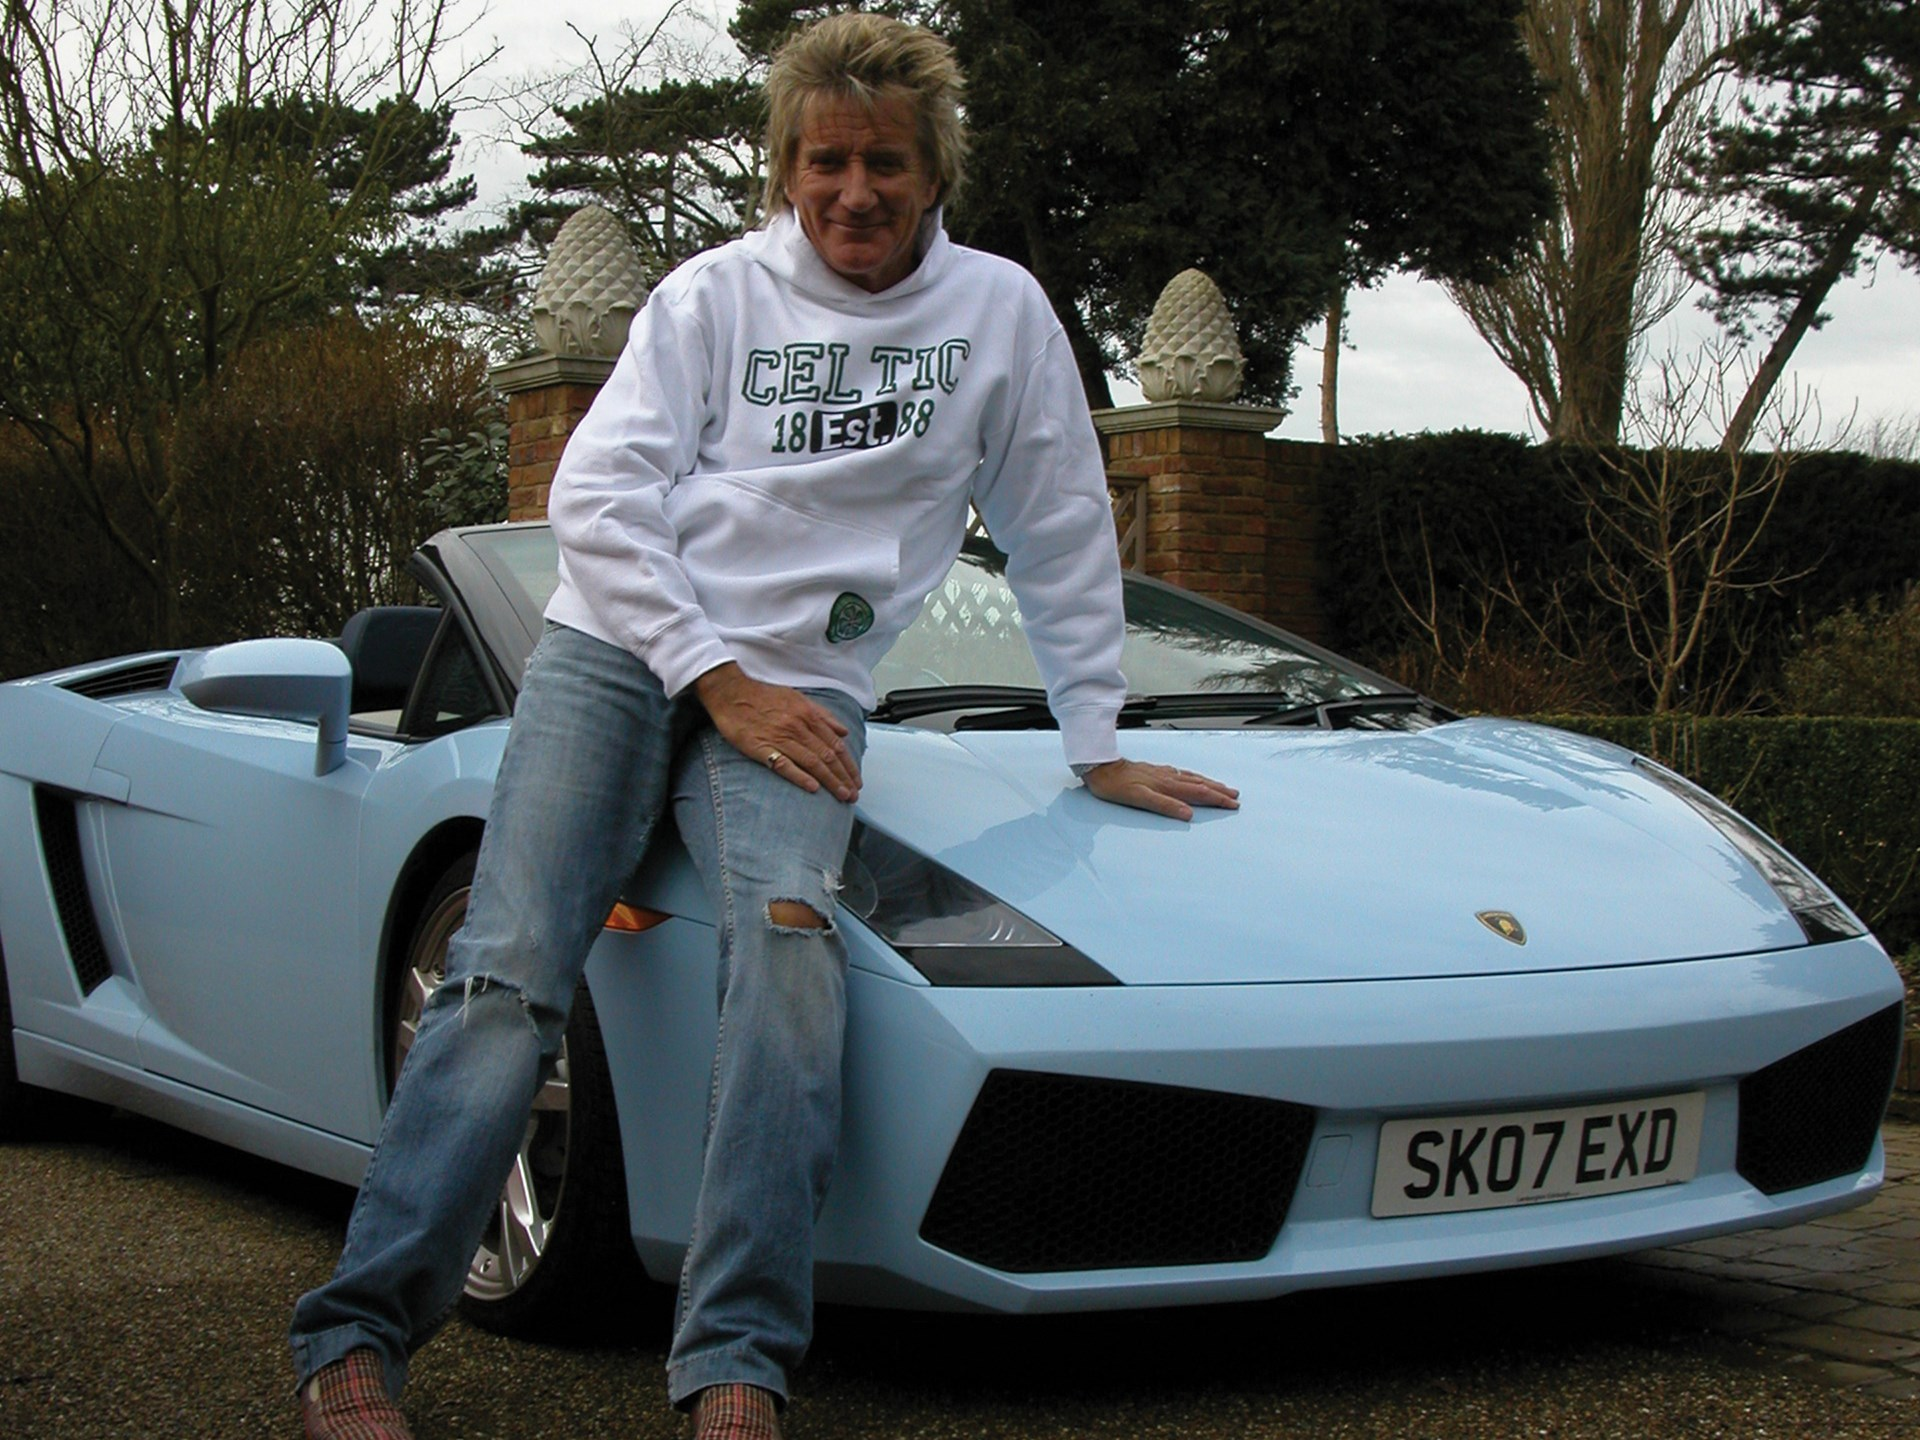 Rod Stewart poses with his Lamborghini Gallardo Spyder outside his home in 2009.